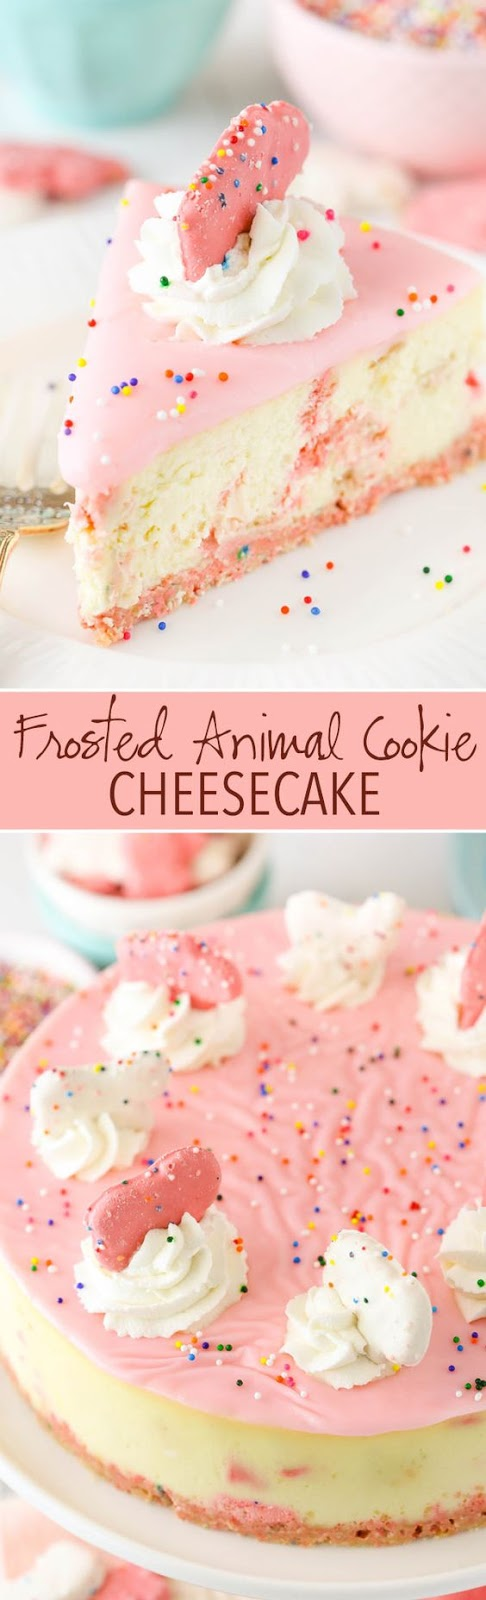 ★★★★☆ 7561 ratings | FROSTED ANIMAL COOKIE CHEESECAKE #HEALTHYFOOD #EASYRECIPES #DINNER #LAUCH #DELICIOUS #EASY #HOLIDAYS #RECIPE #FROSTED #ANIMAL #COOKIE #CHEESECAKE